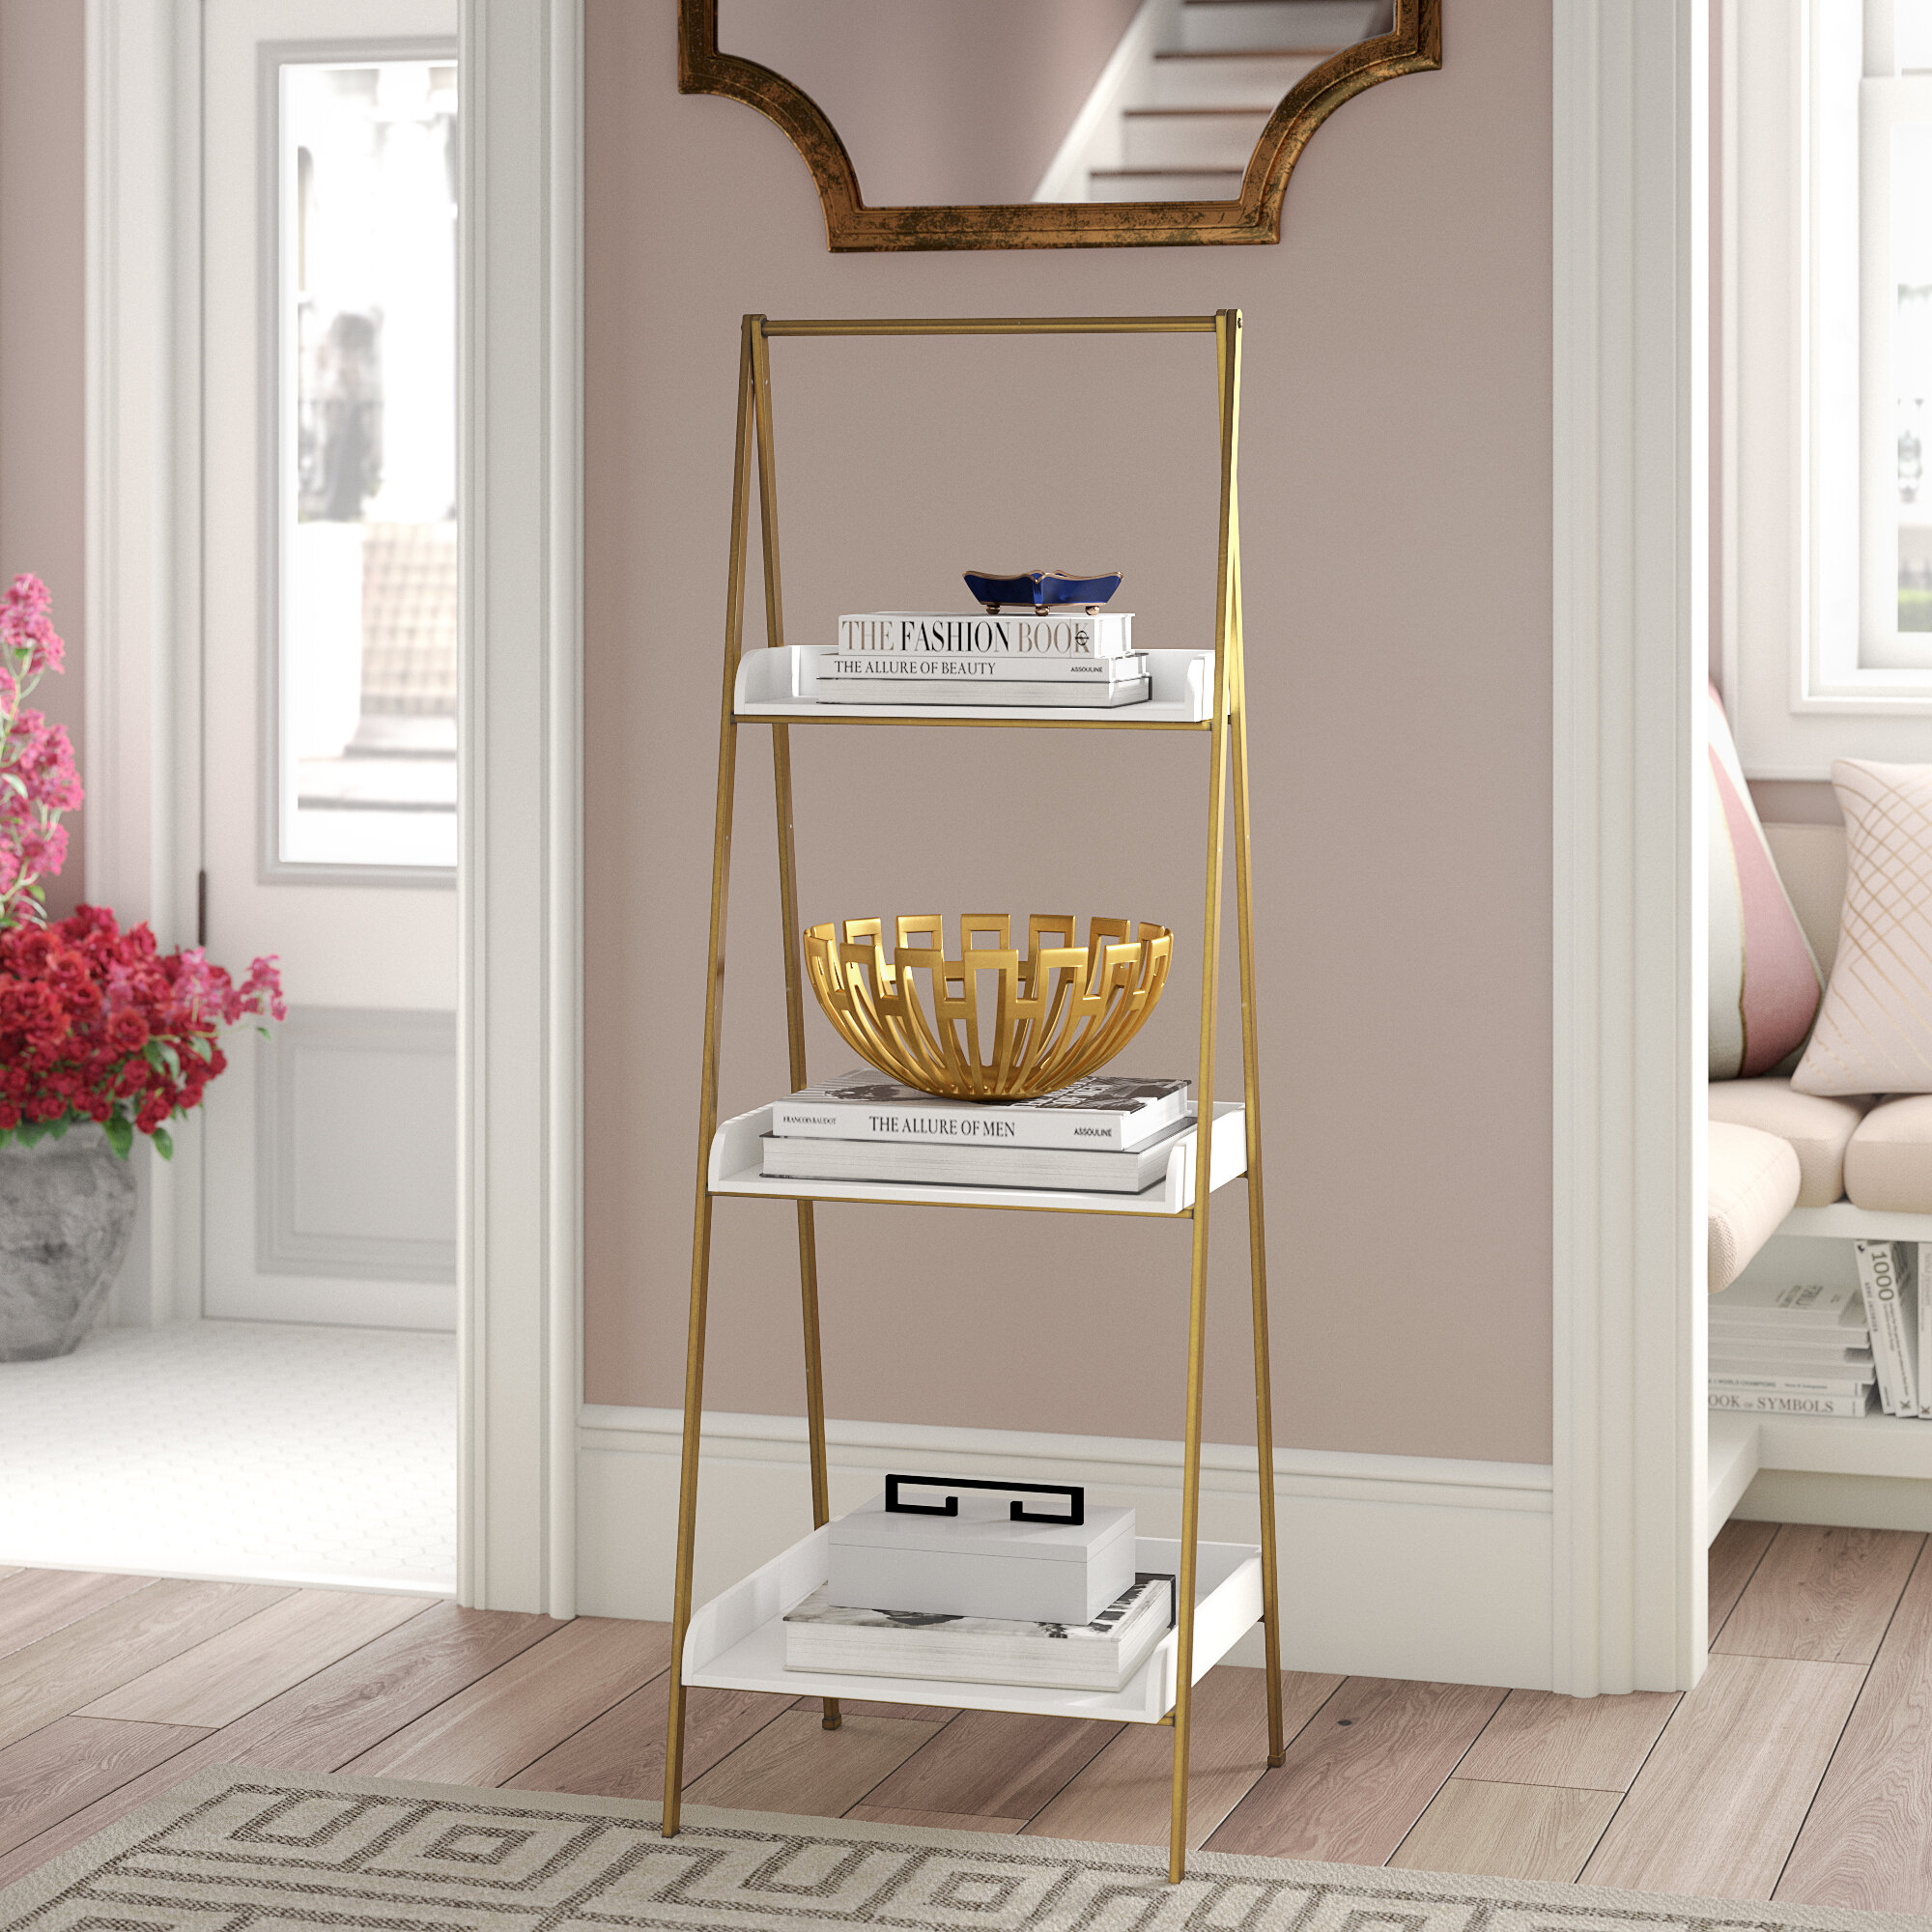 Willa Arlo Interiors Shangrila Ladder Bookcase & Reviews | Wayfair